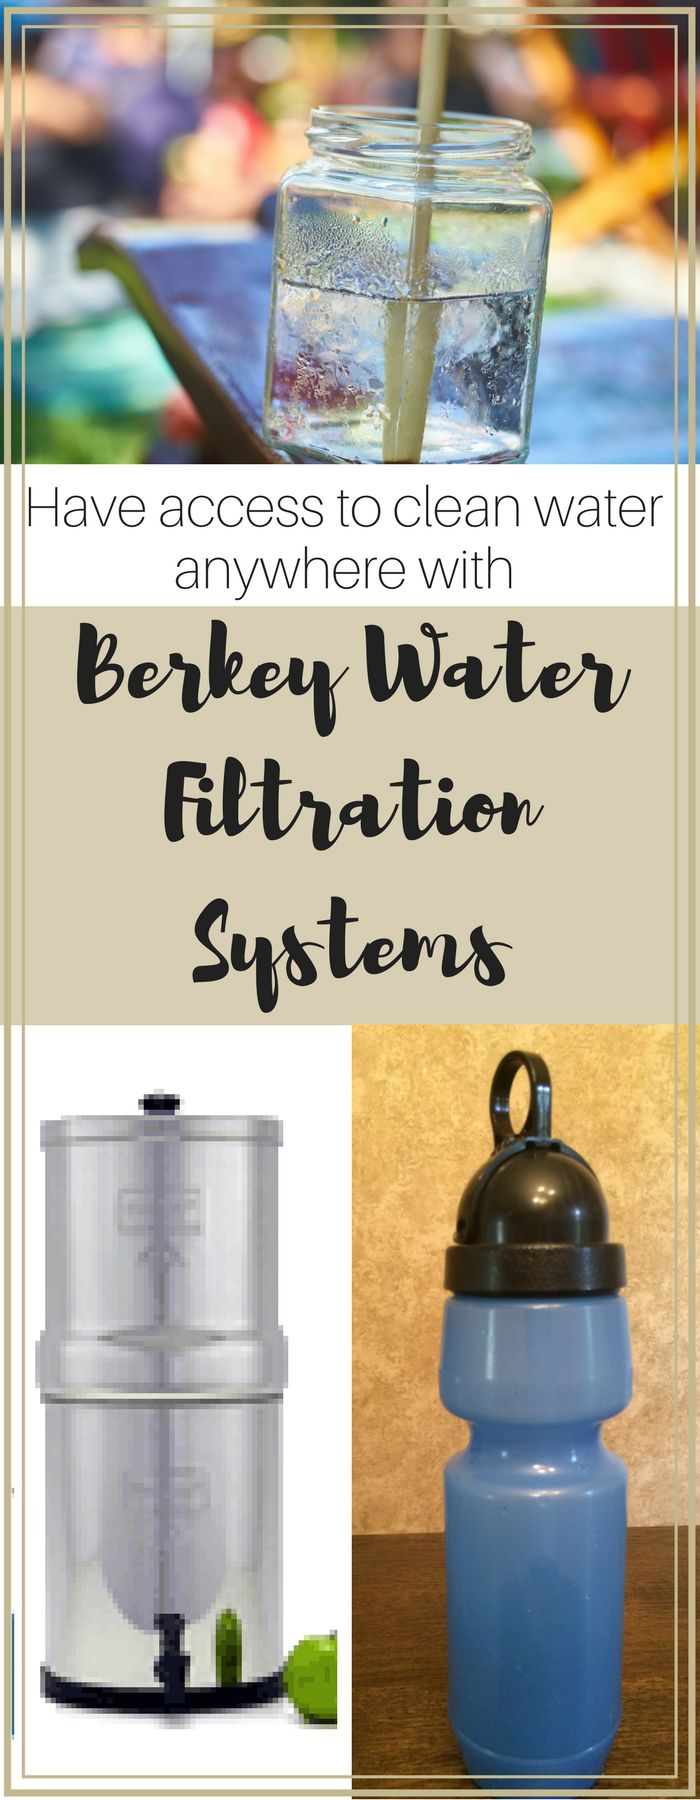 Have access to clean water at home & on-the-go with Berkey!